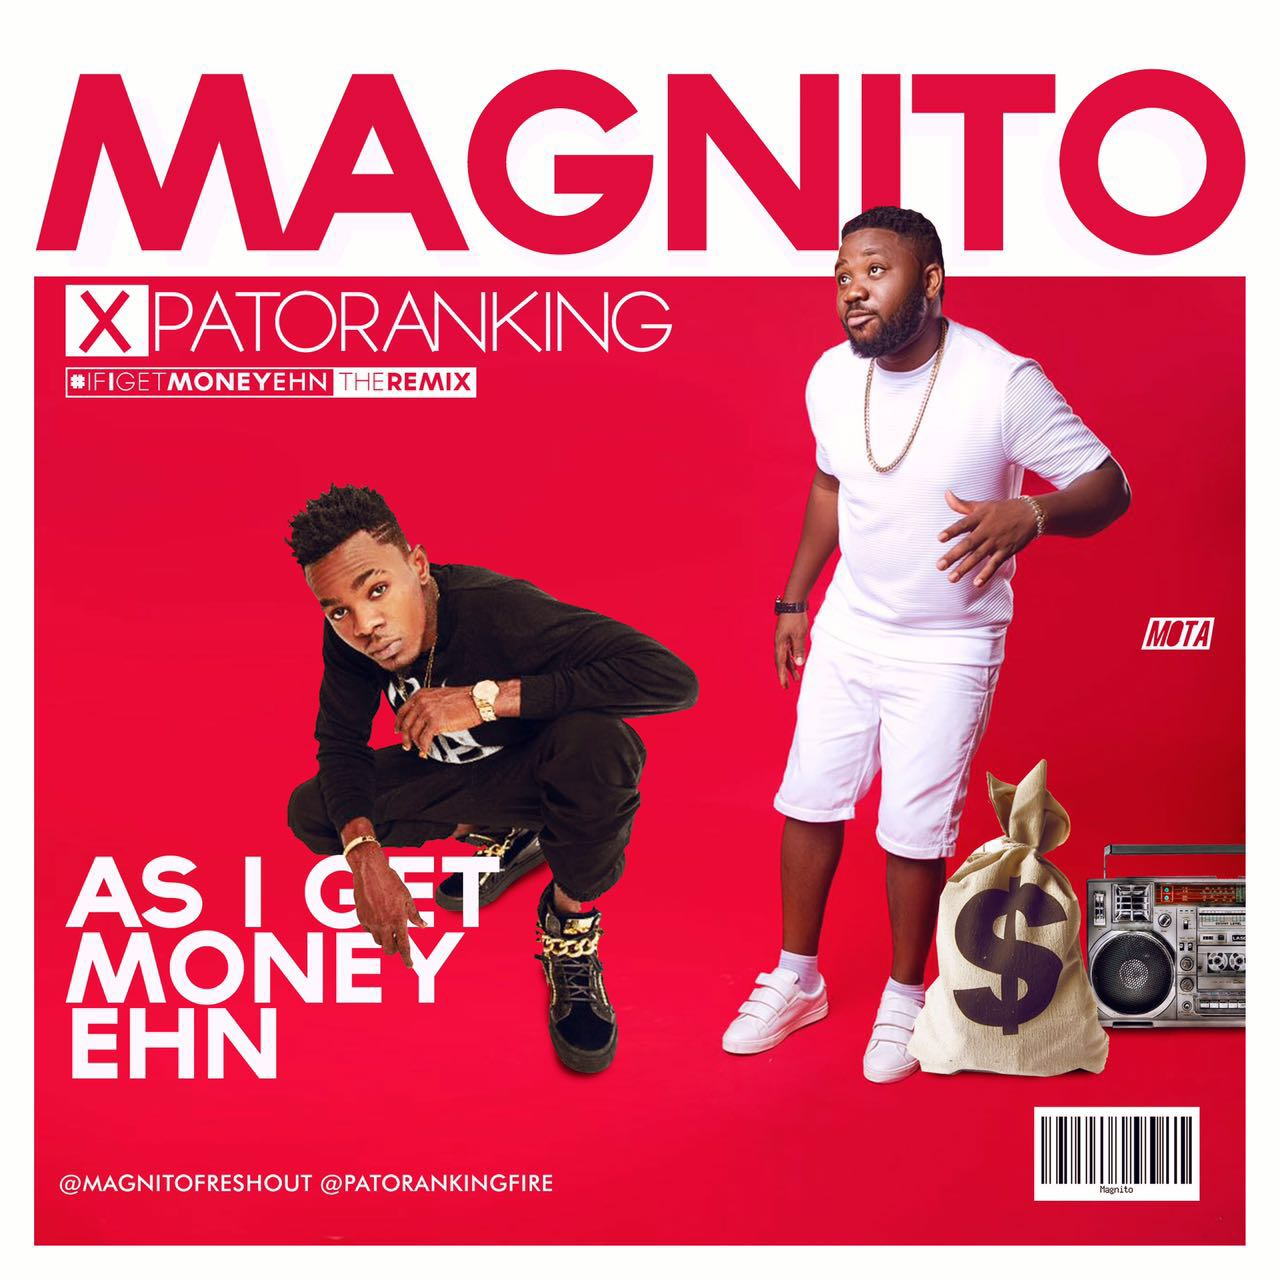 Magnito ft. Patoranking - As I Get Money Ehn